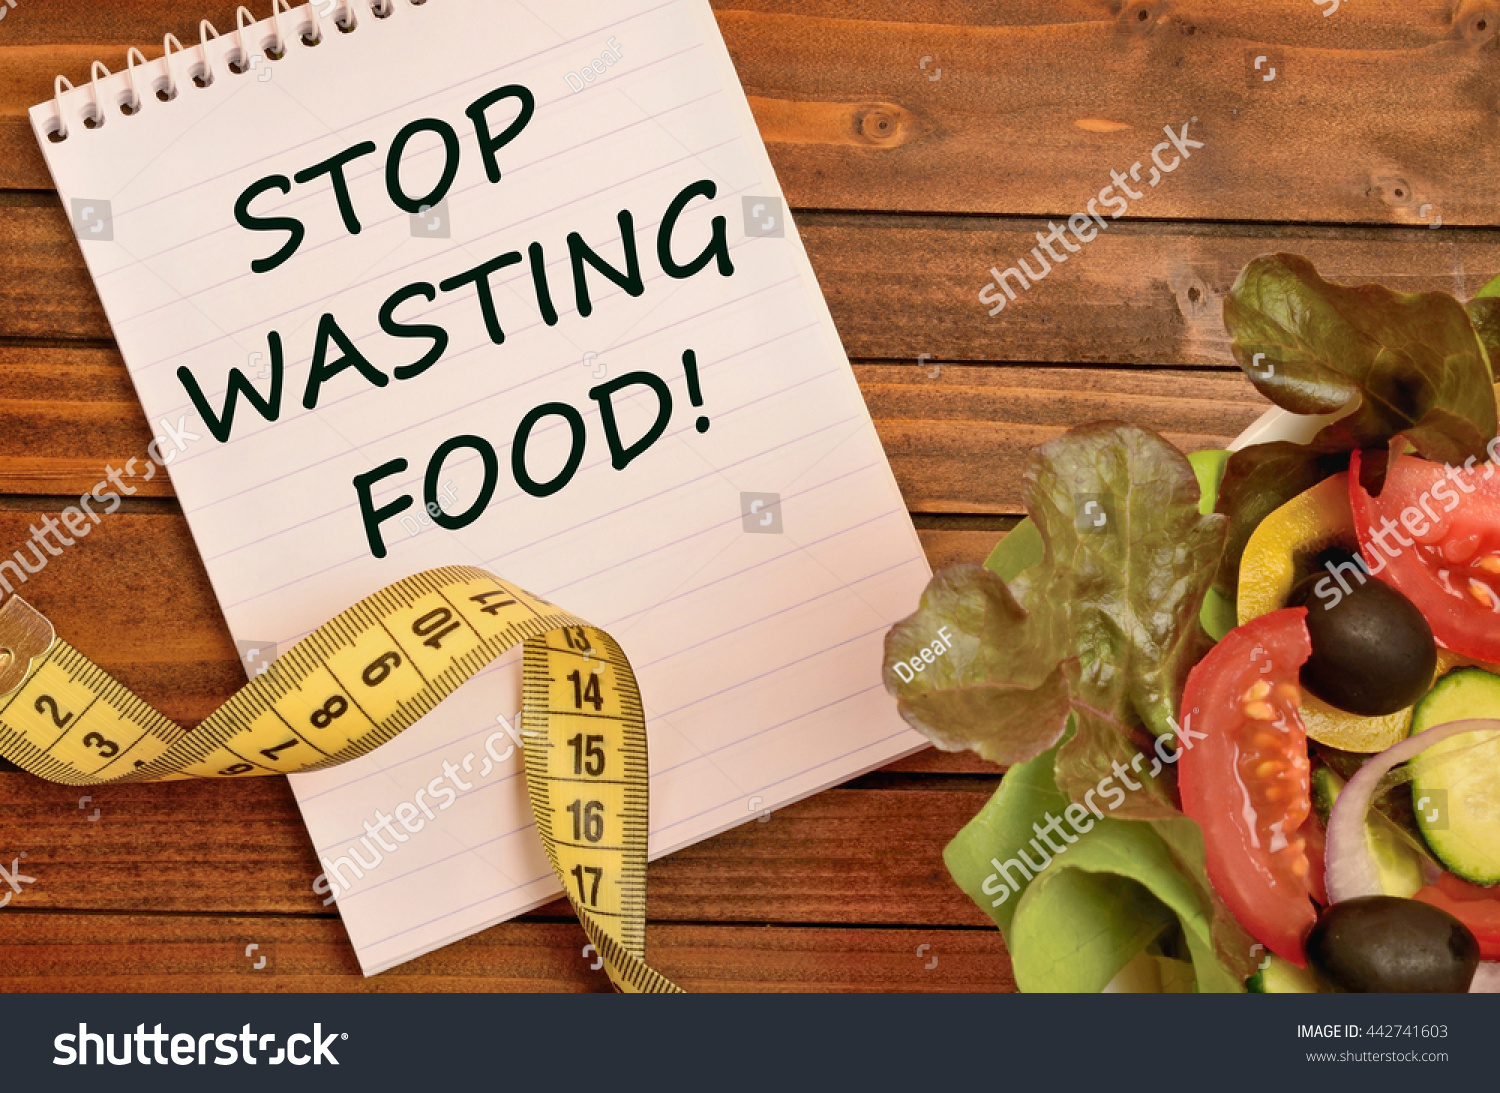 how to stop wasting seed